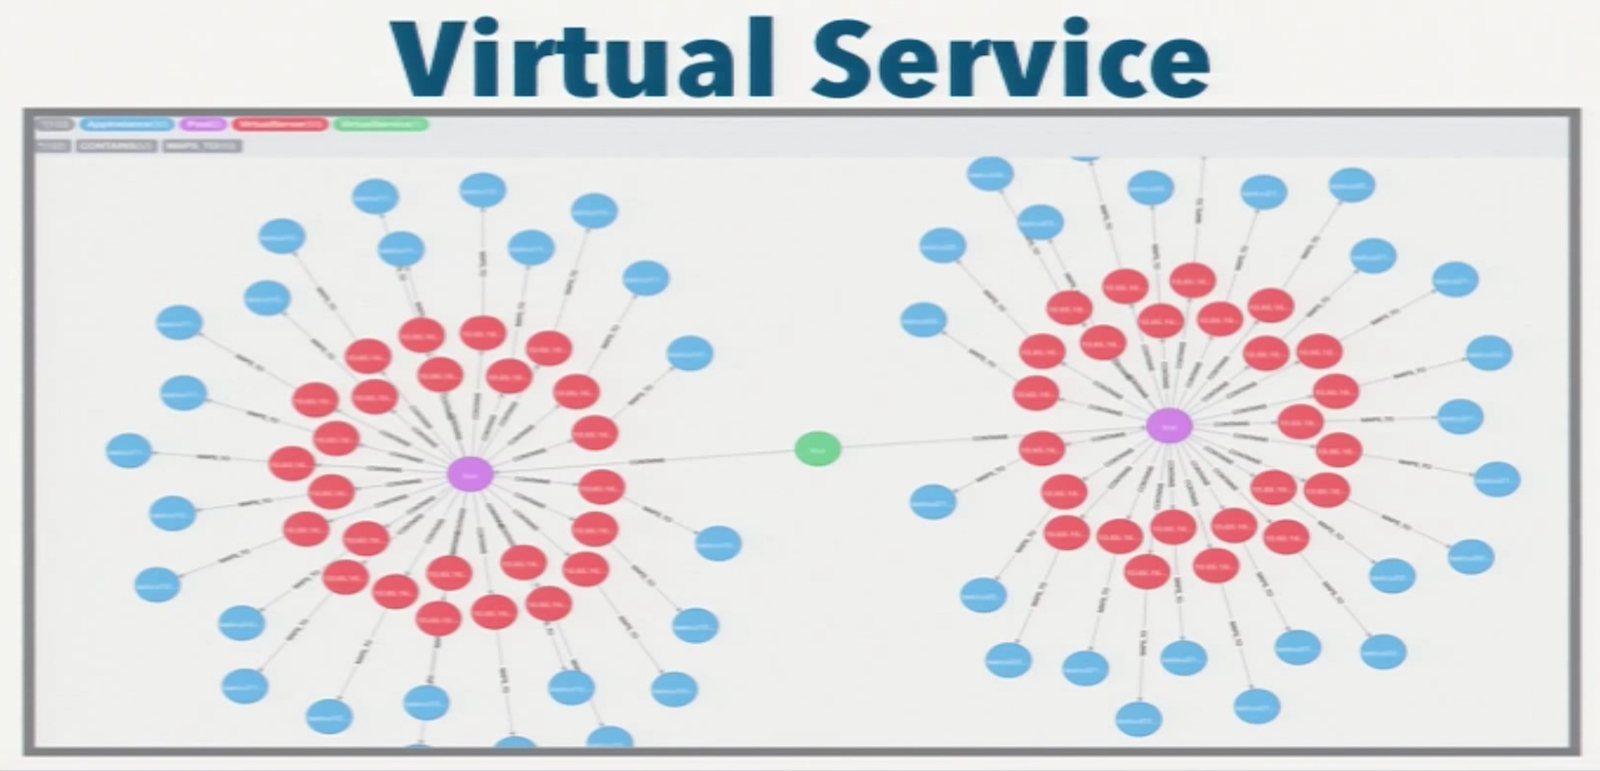 A Neo4j Data Model of Virtual Services